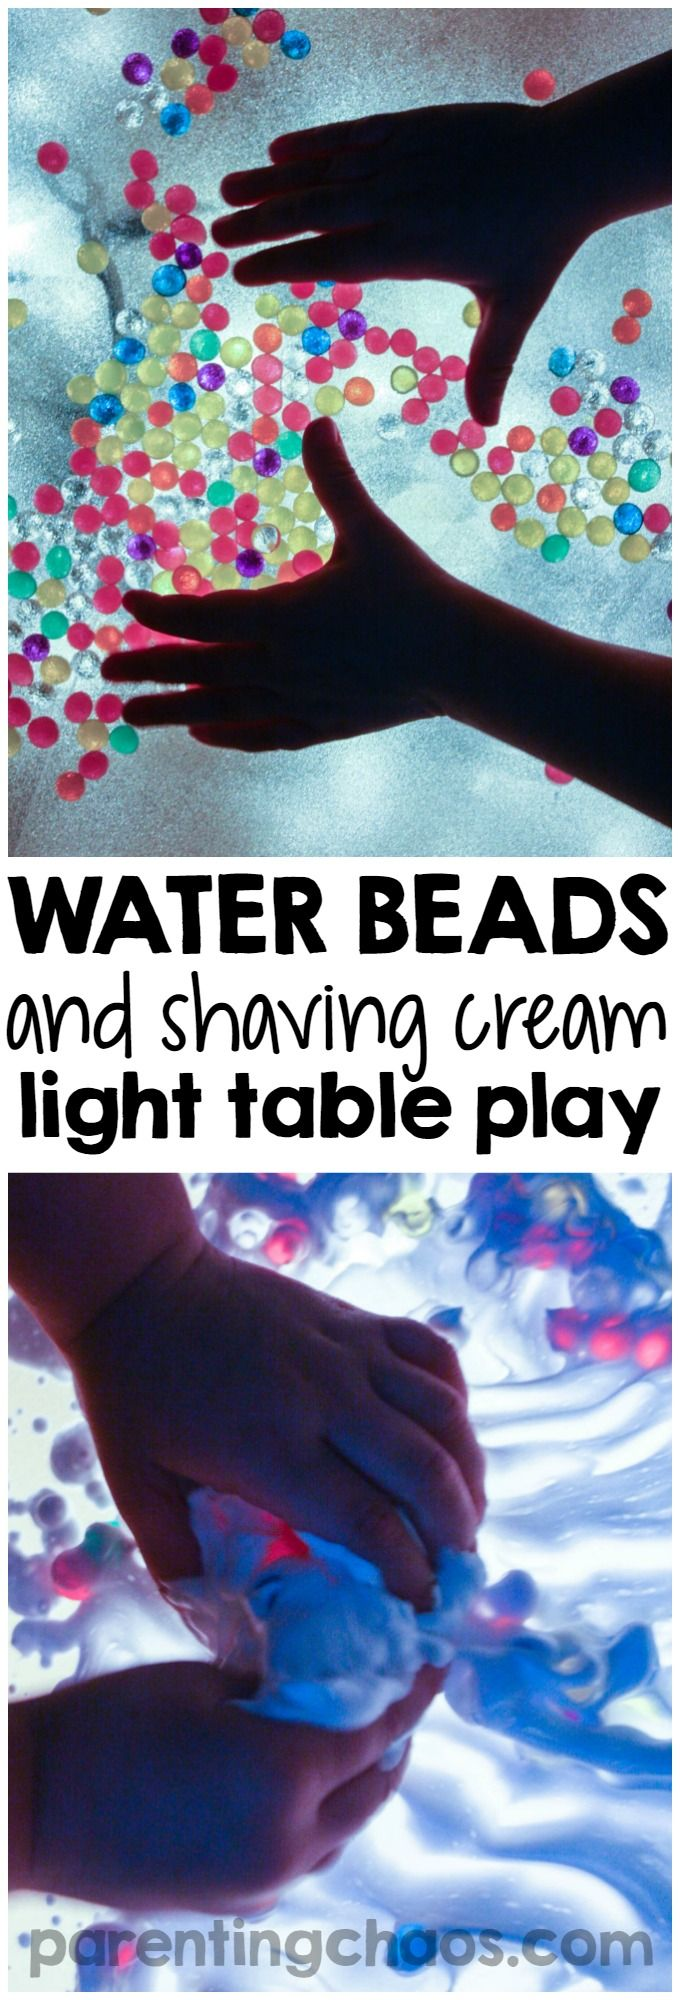 Child craft light table - Playing With Water Beads And Shaving Cream On The Light Table Is So Simple And Mesmerizing